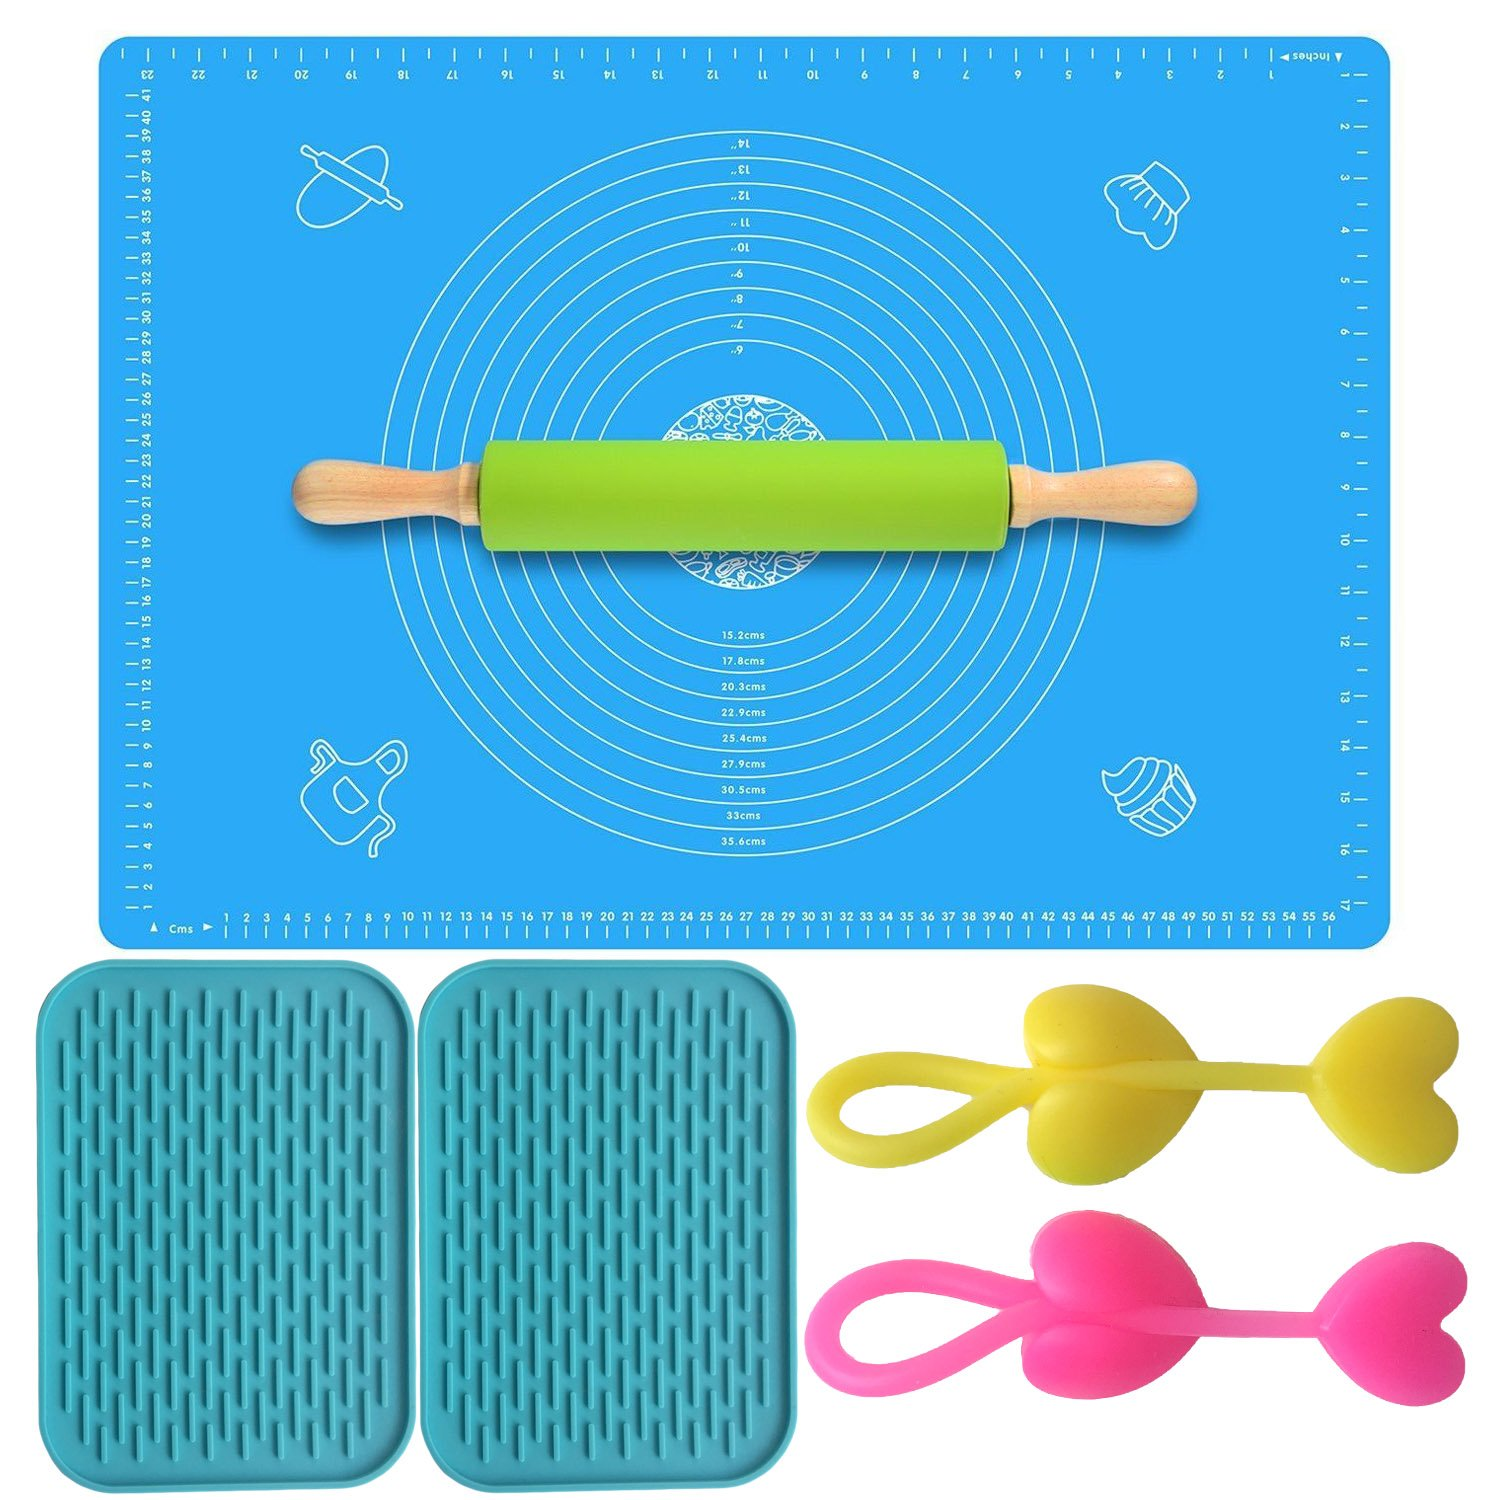 Allscarf007 Large Thin Pastry Mat Heat Resistant Nonskid Table Mat Orange Cartoon Pig Countertop Protection Silicone Nonstick Baking Mat